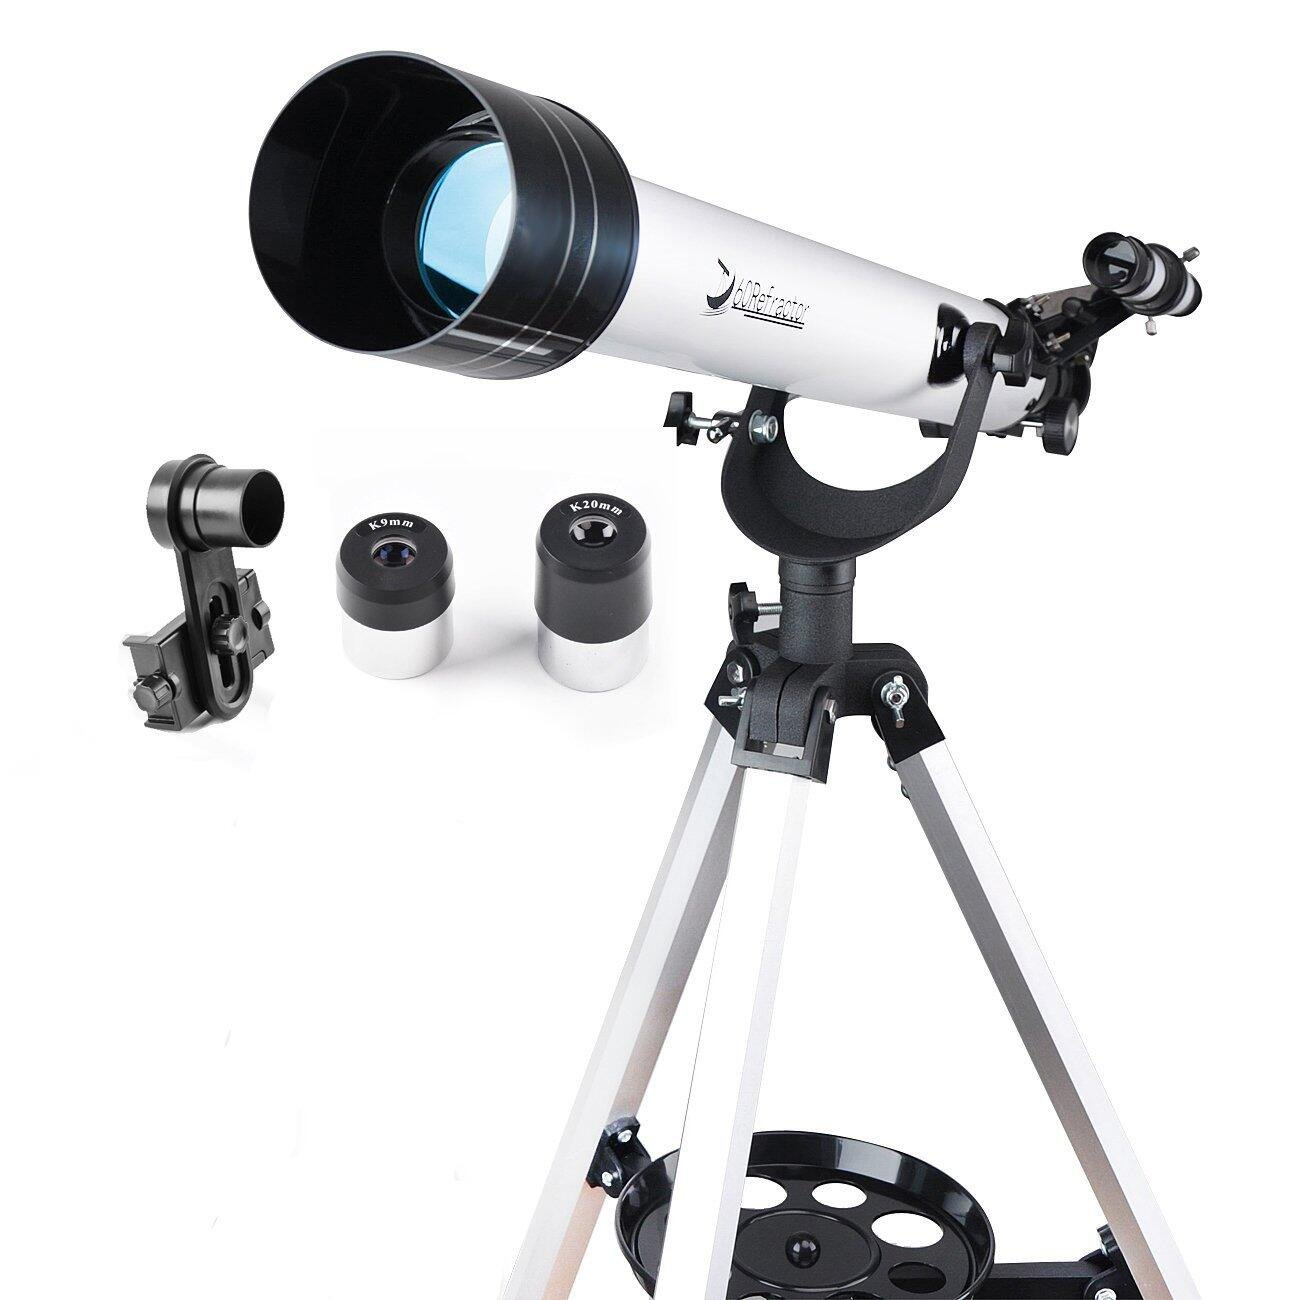 Solomark Telescope, 60mm AZ Refractor Telescope with 10mm Smartphone Digiscoping Adapter - Observer 60mm AZ Refractor & Travel Scope Starter Kit